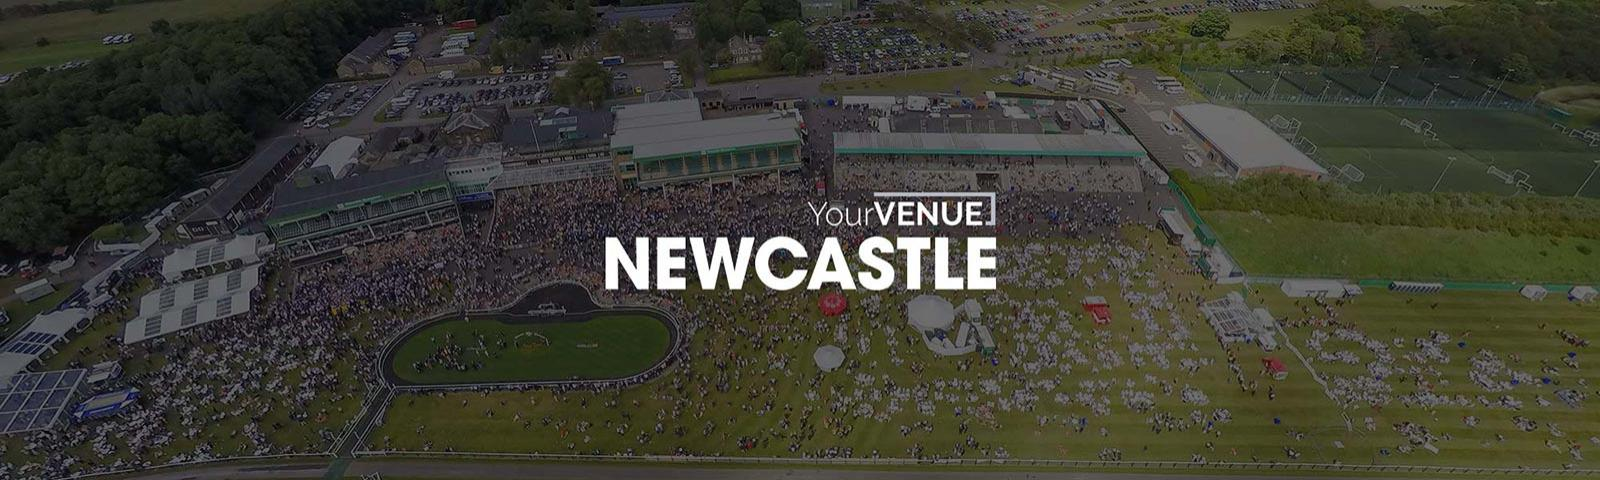 An Aerial view of Newcastle Racecourse with the YourVENUE logo in the foreground.